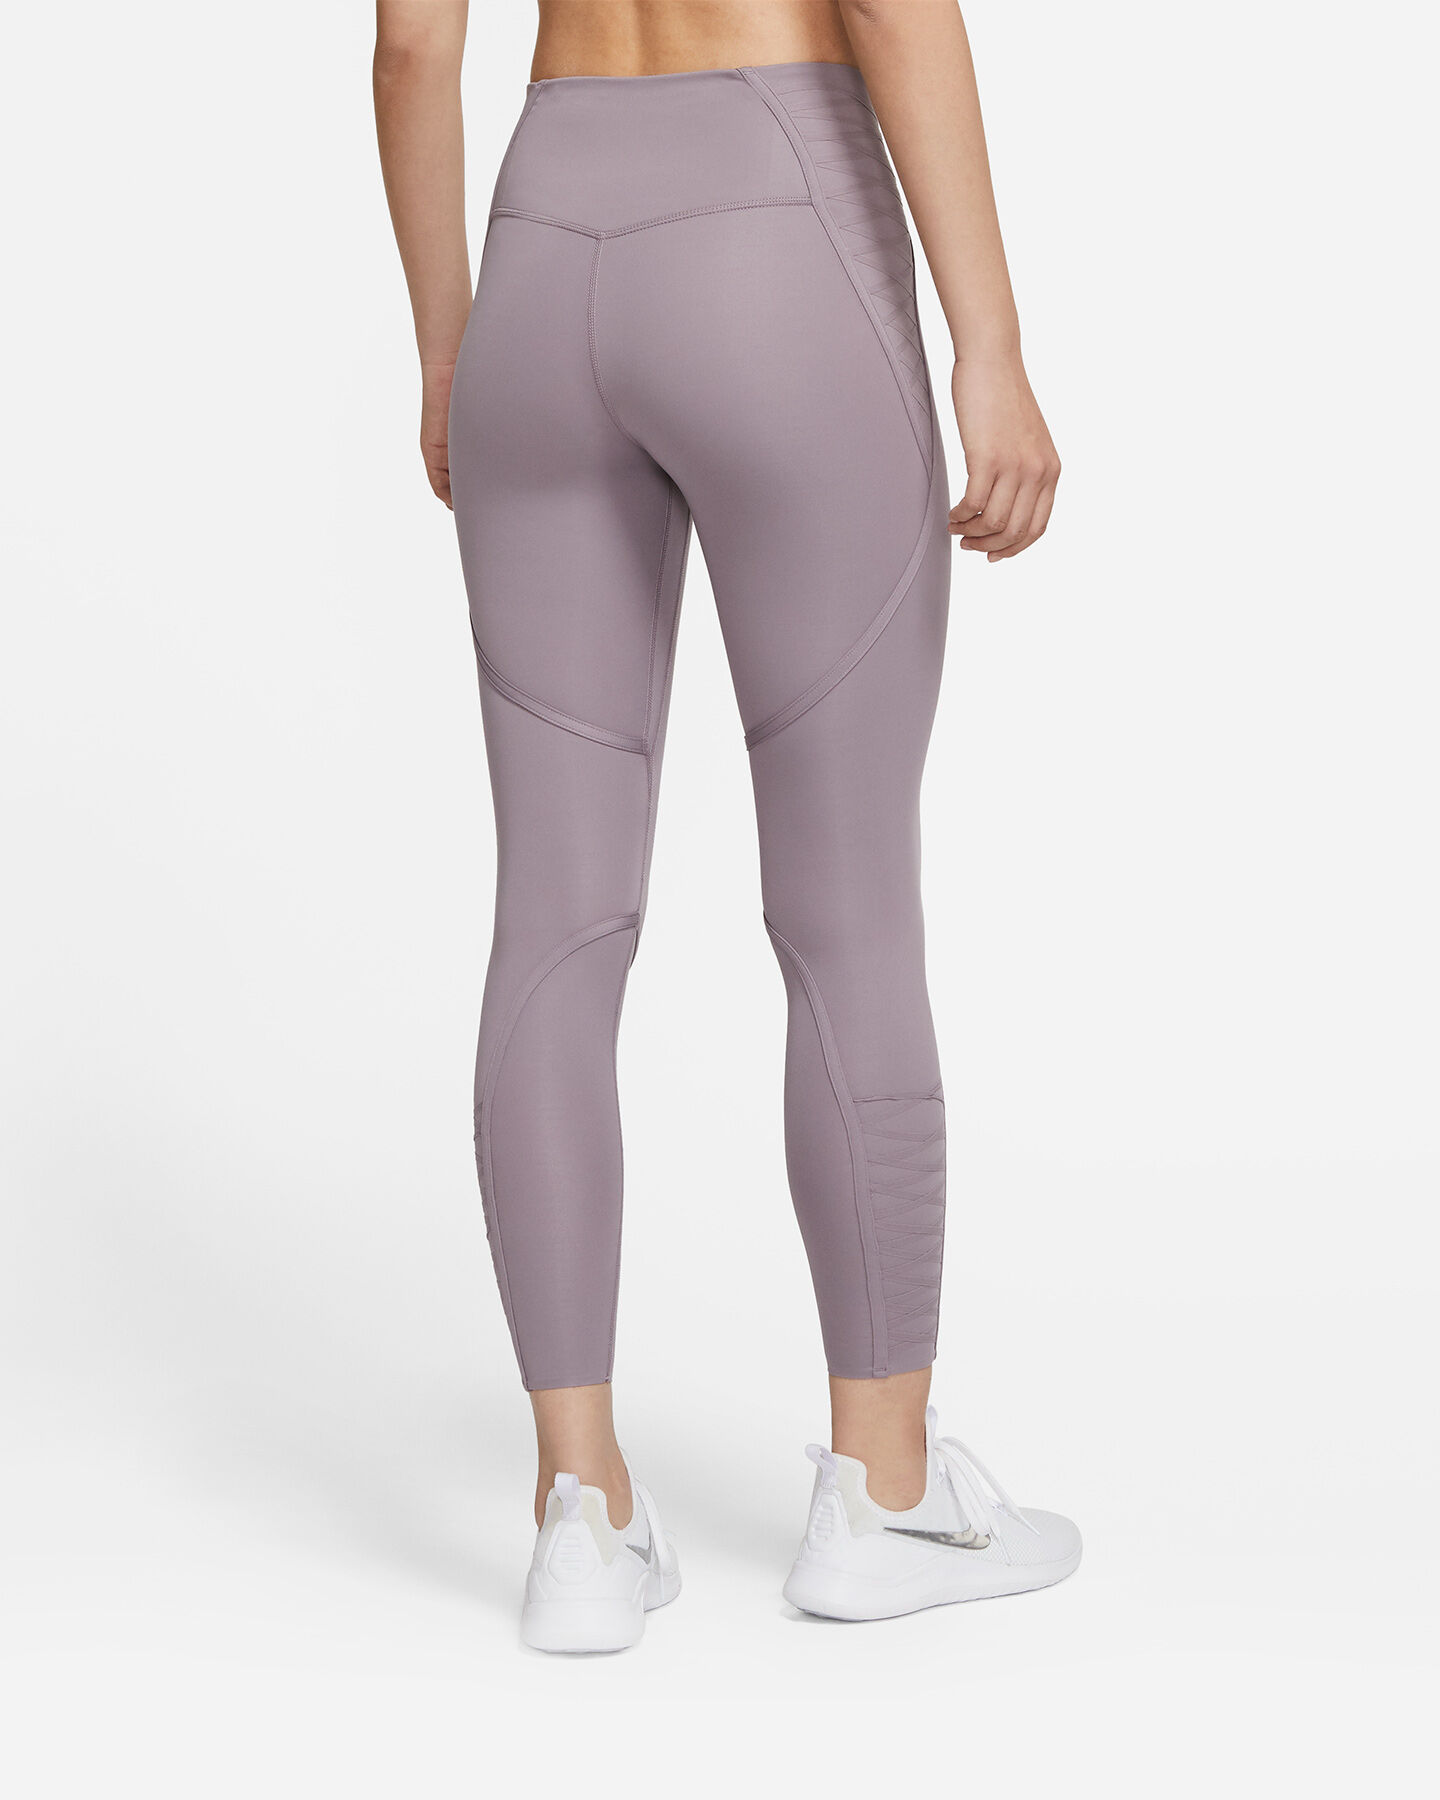 Leggings NIKE ONE LUX 7/8 W S5270517 scatto 1